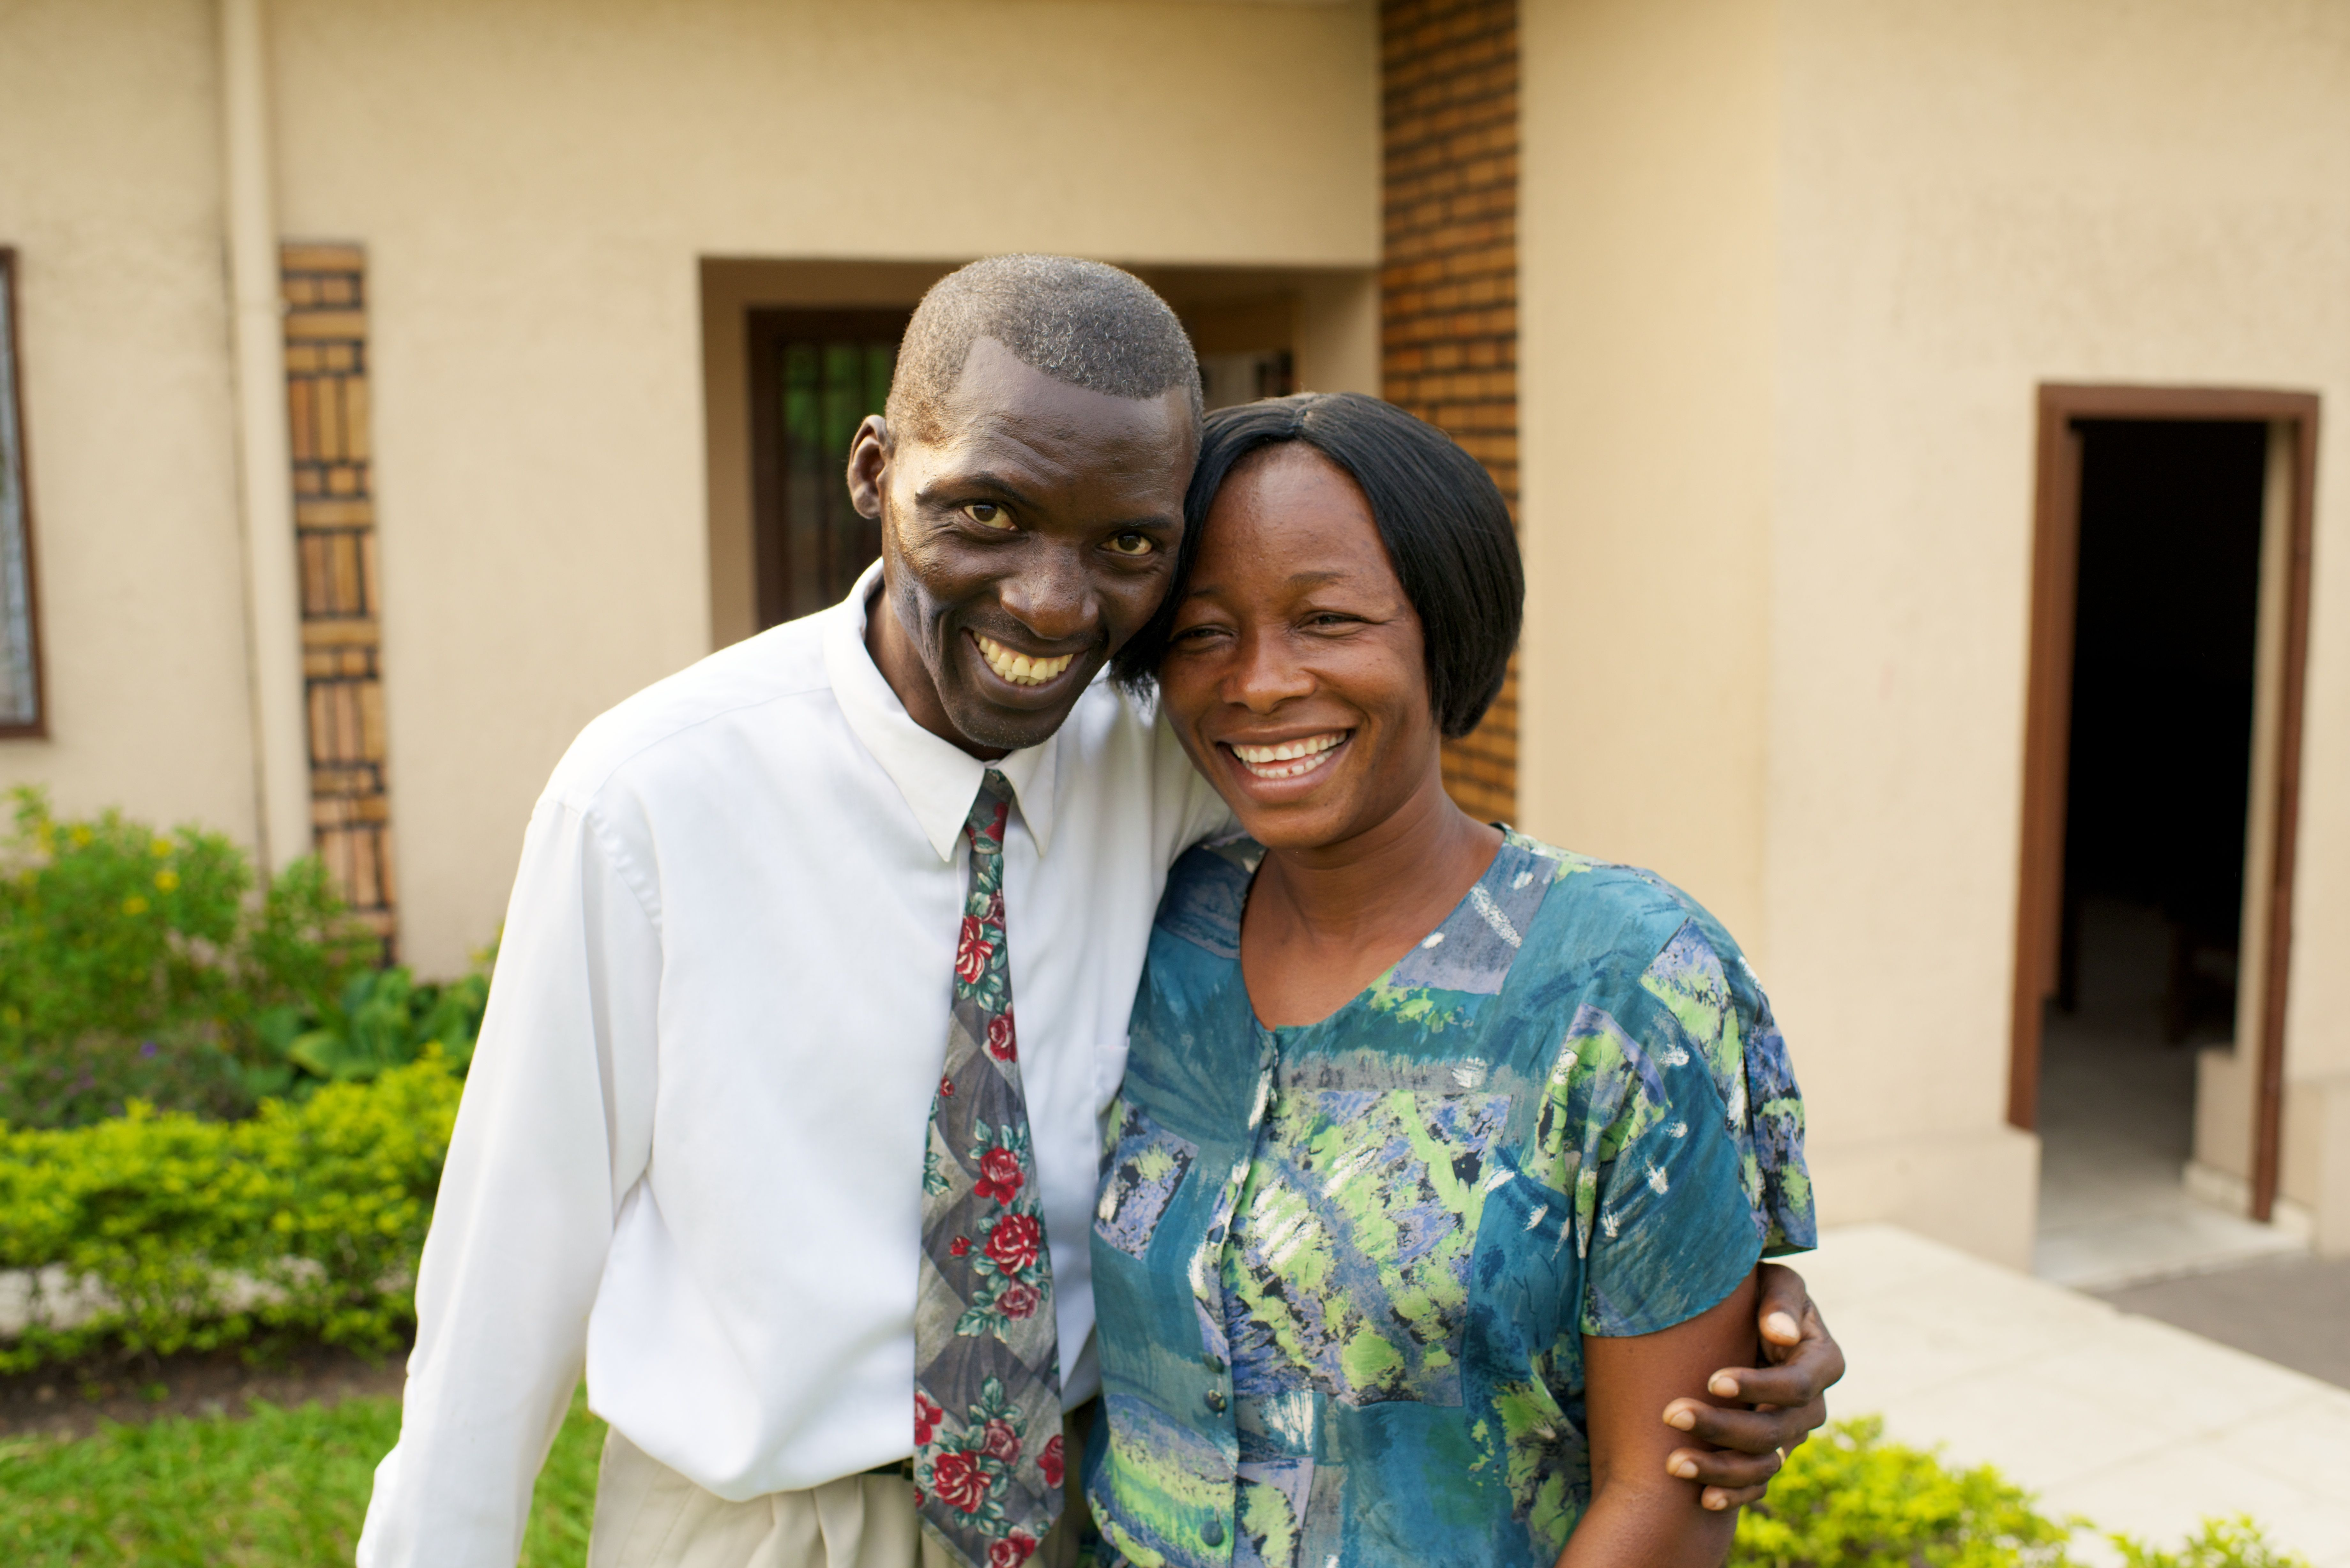 A husband and wife standing beside each other outside in Africa.